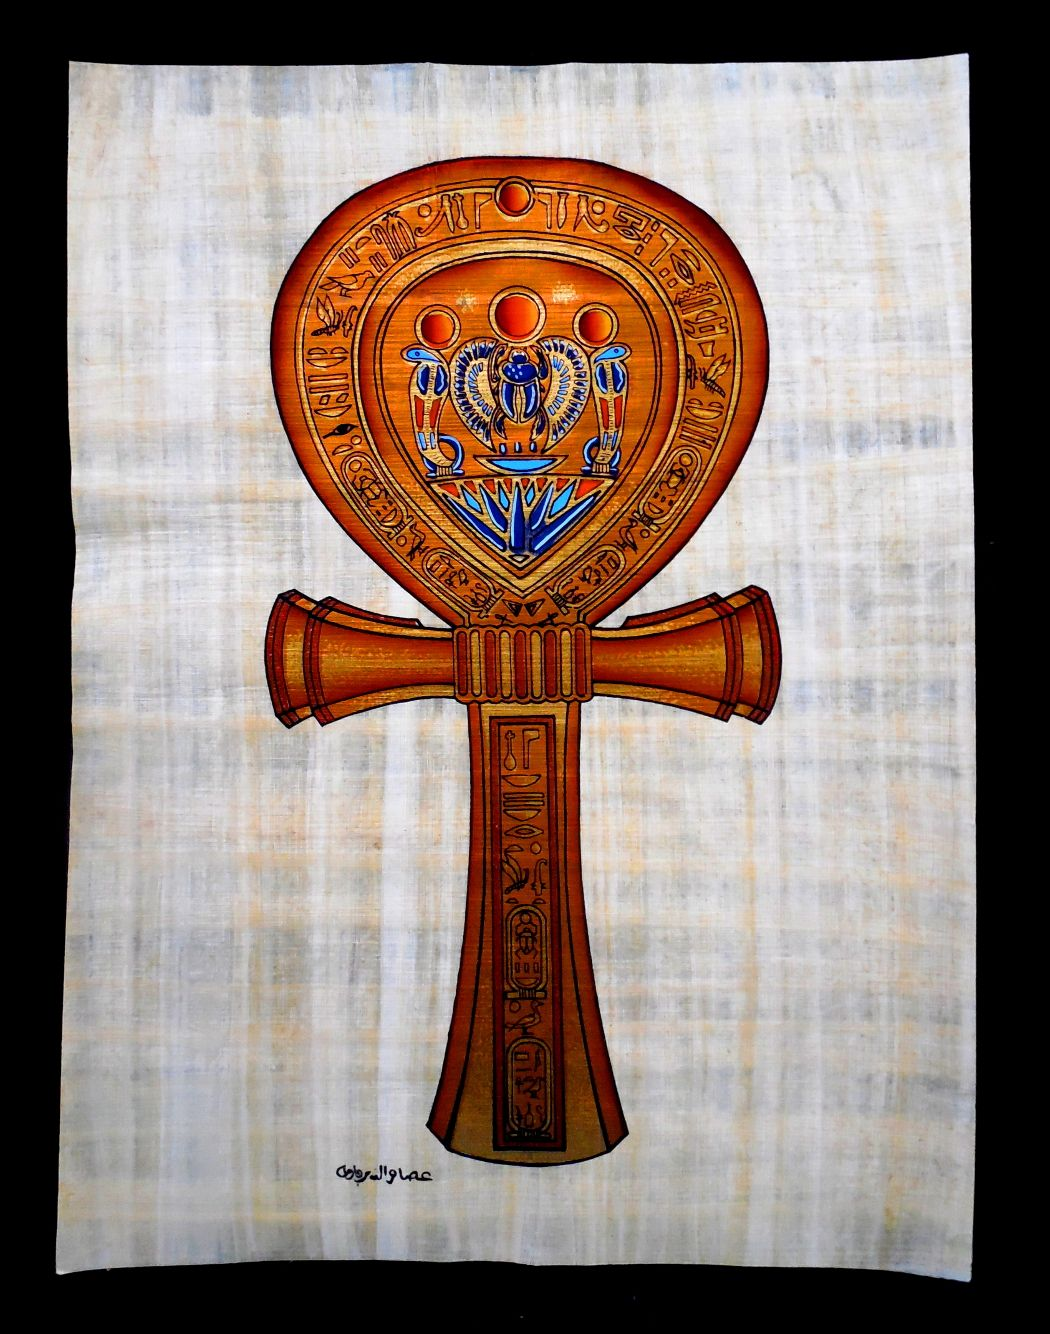 Ankh ancient egyptian papyrus painting ancient egyptian art ancient egyptian art on egyptian papyrus ankh key of life or the key of the nile buycottarizona Images